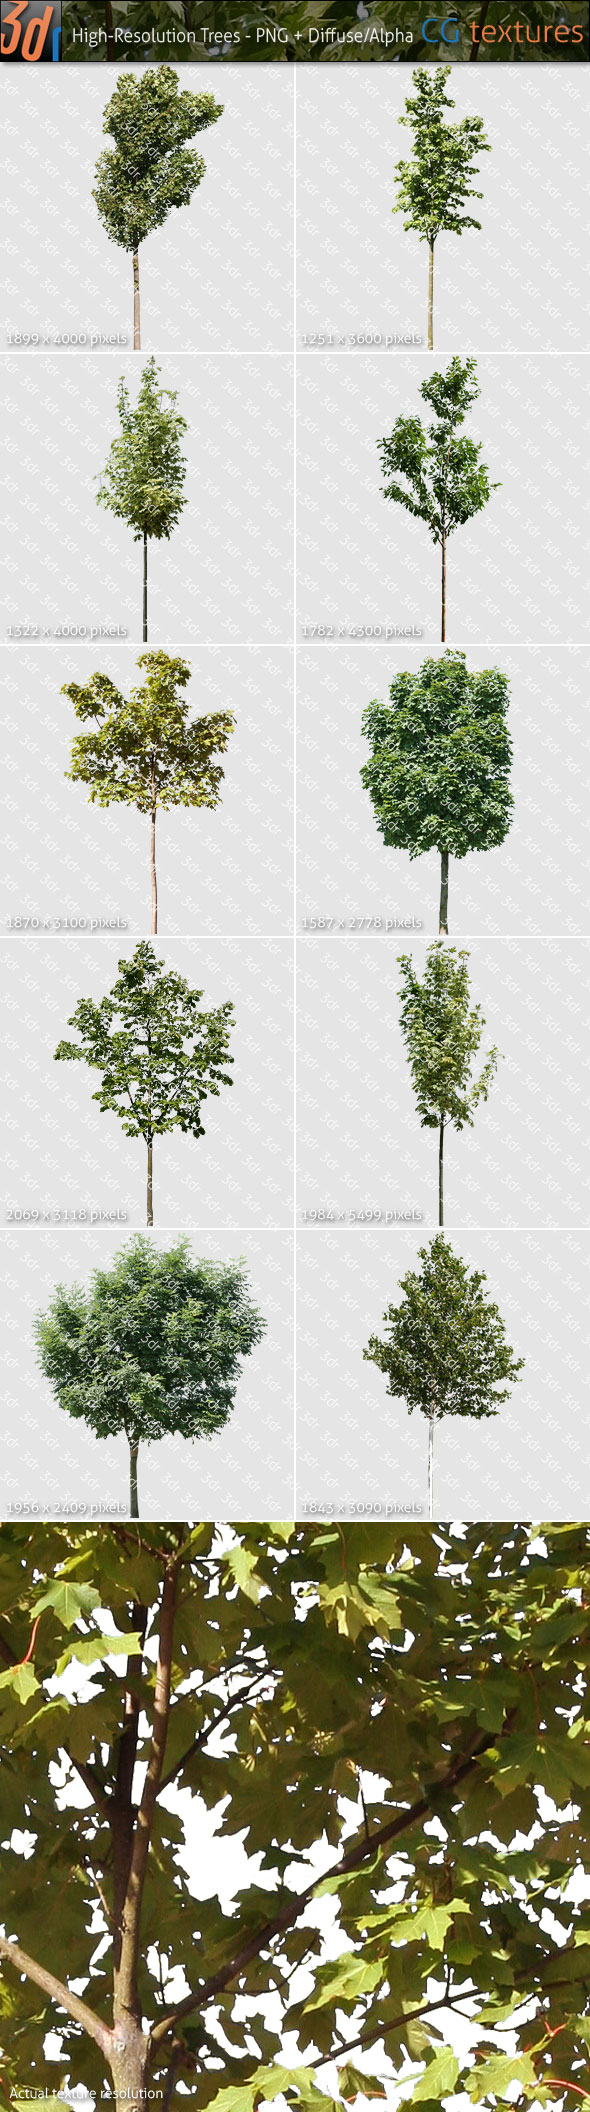 Trees Textures Hi-Res Collection 03 - 3DOcean Item for Sale